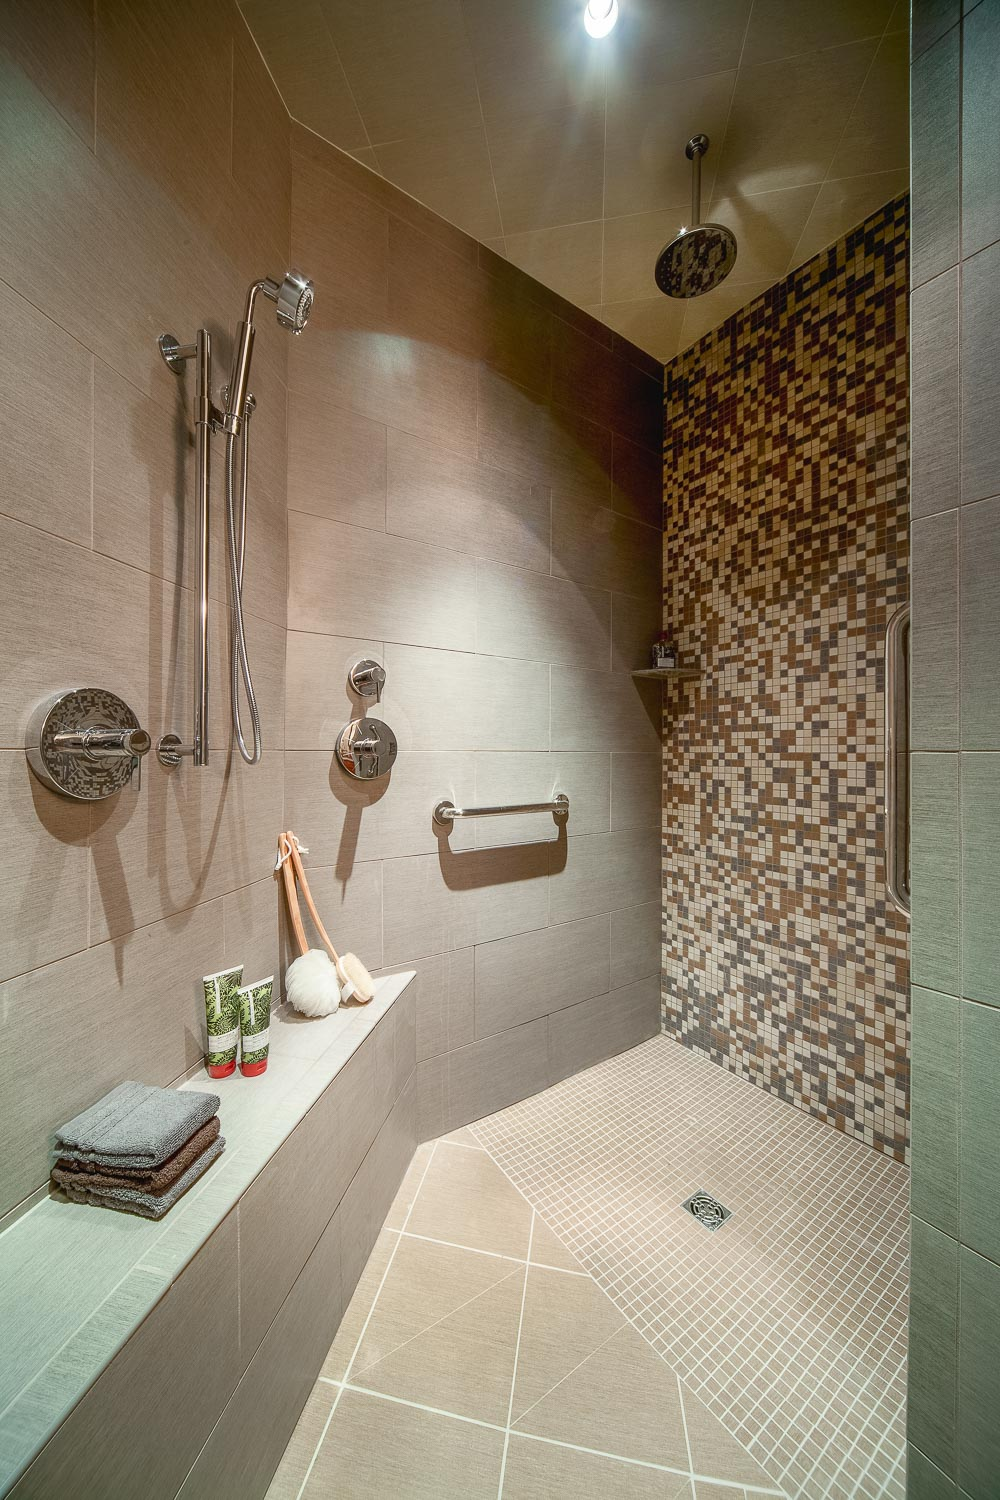 Choosing A Shower Head Style For A Master Bathroom Remodel